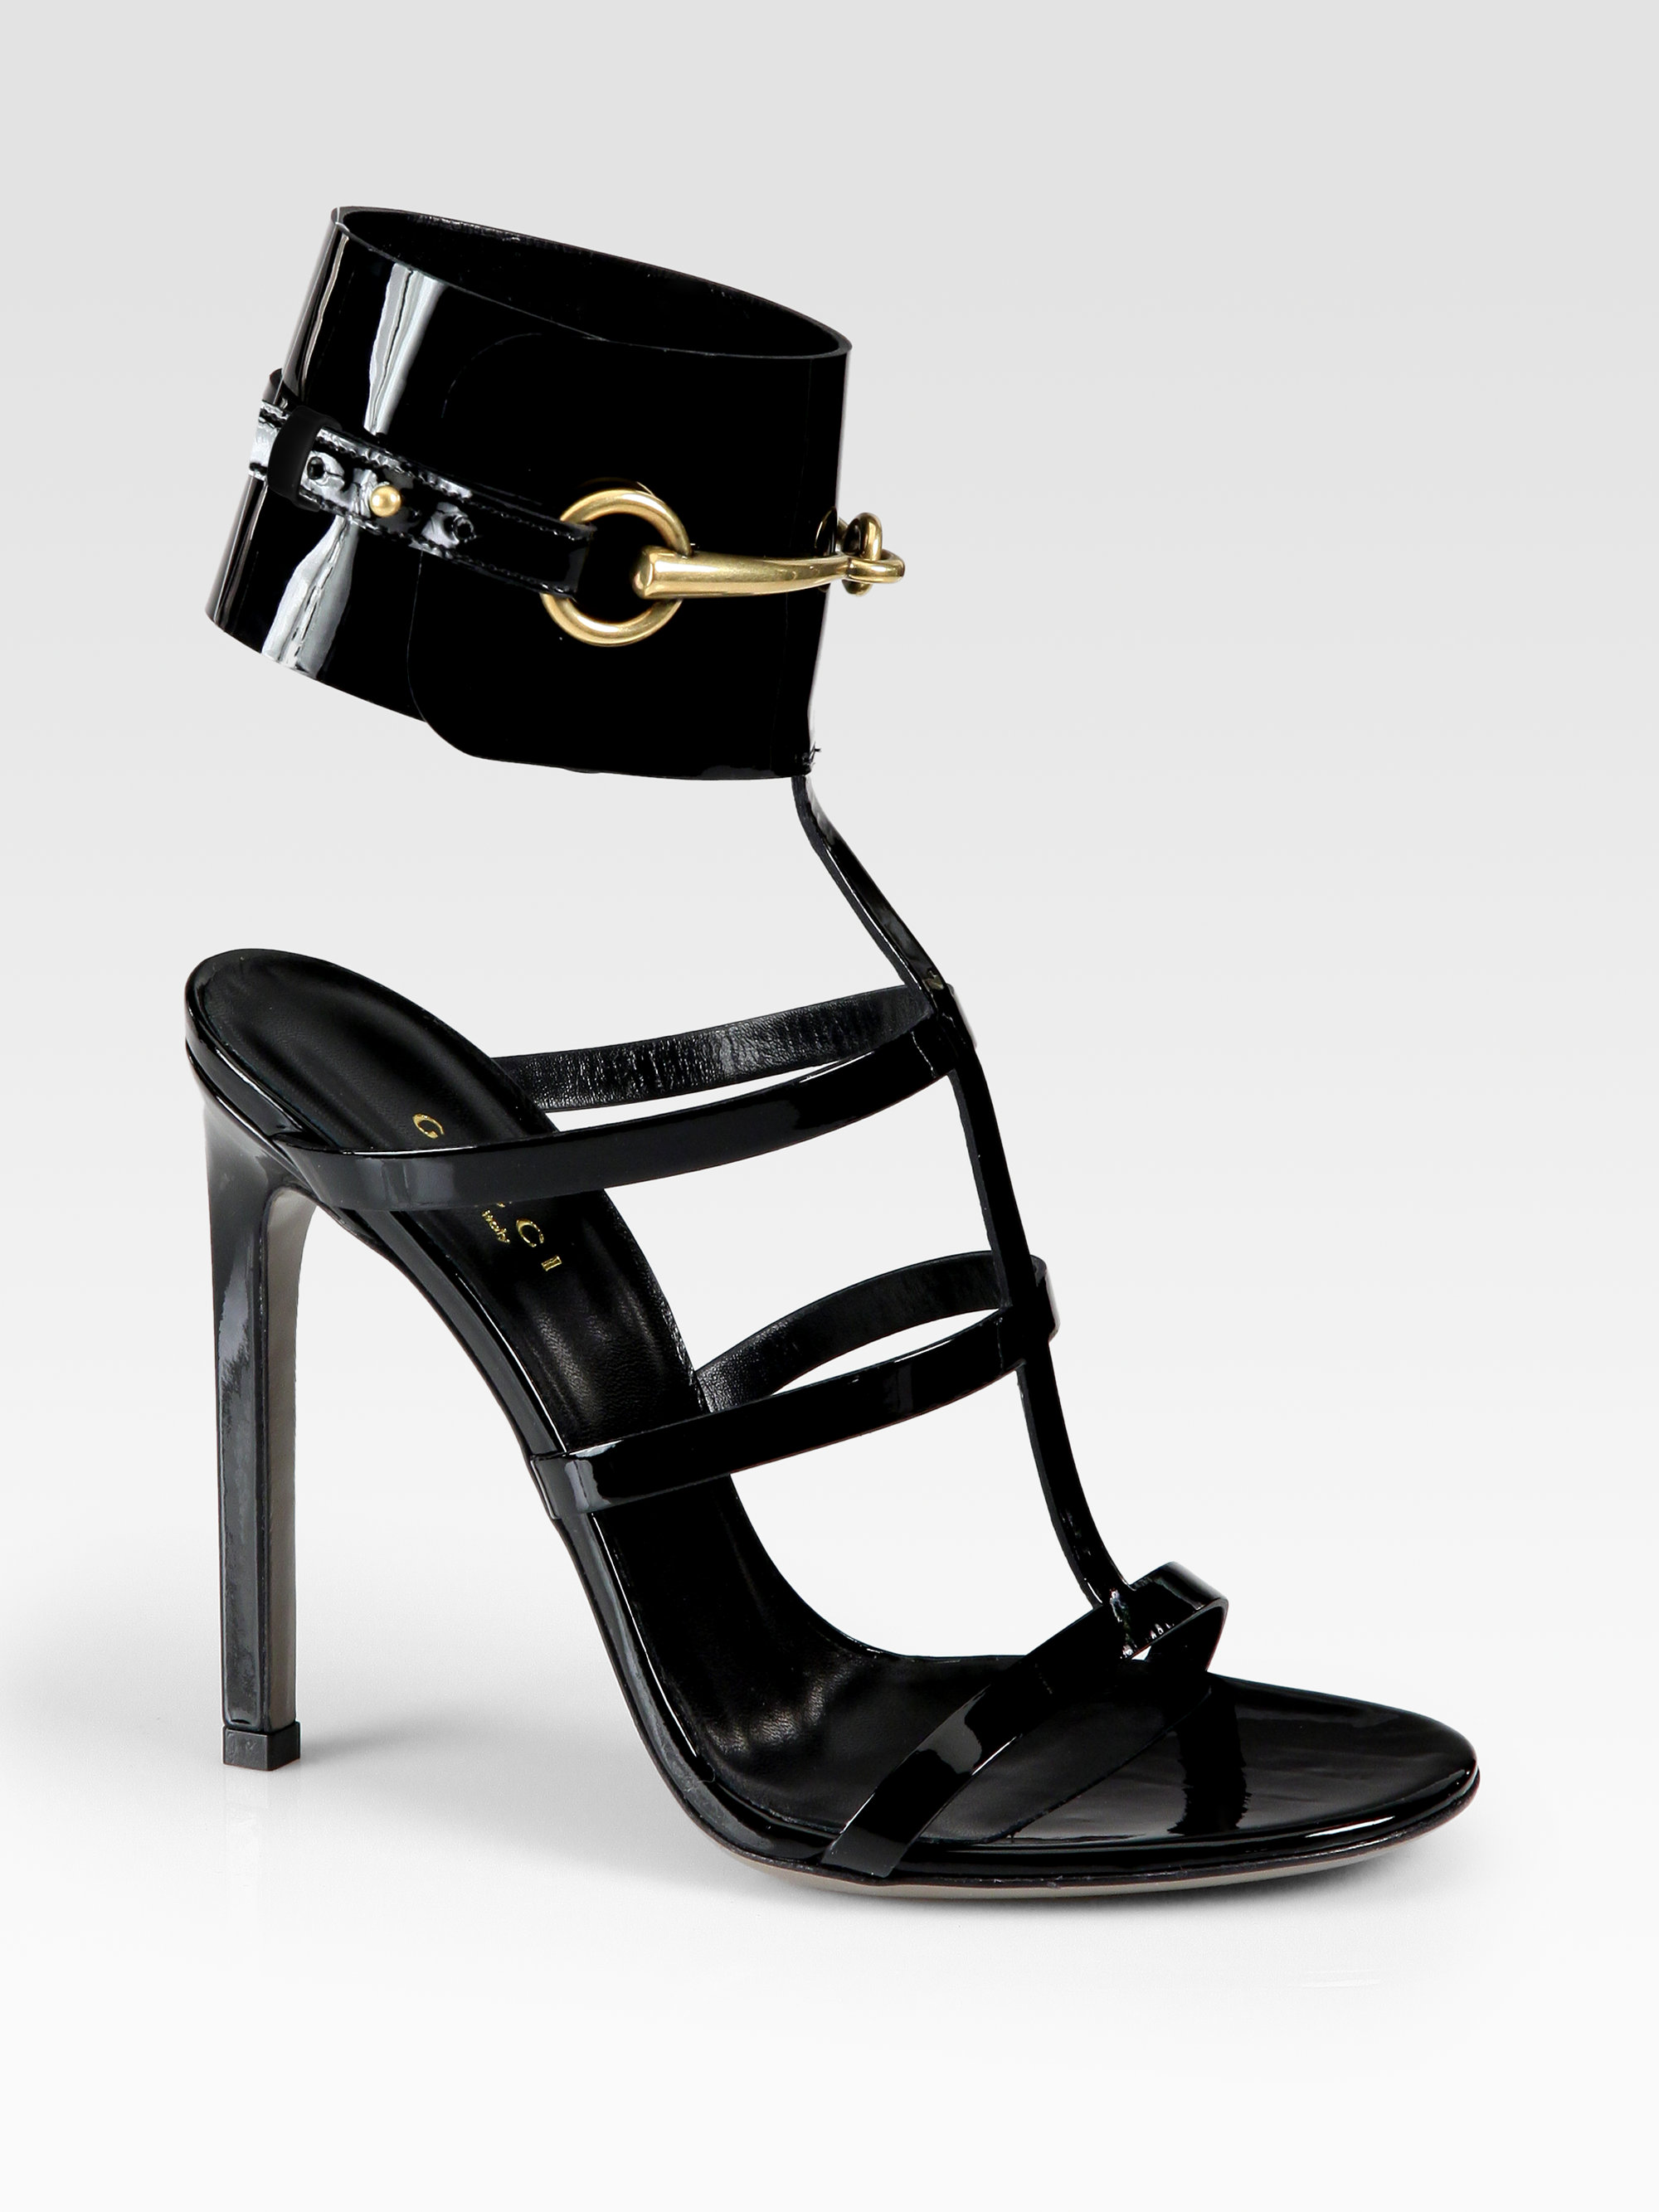 1d05fa80b47 Gucci Ursula Patent Leather Horsebit Ankle Strap Sandals in Black - Lyst